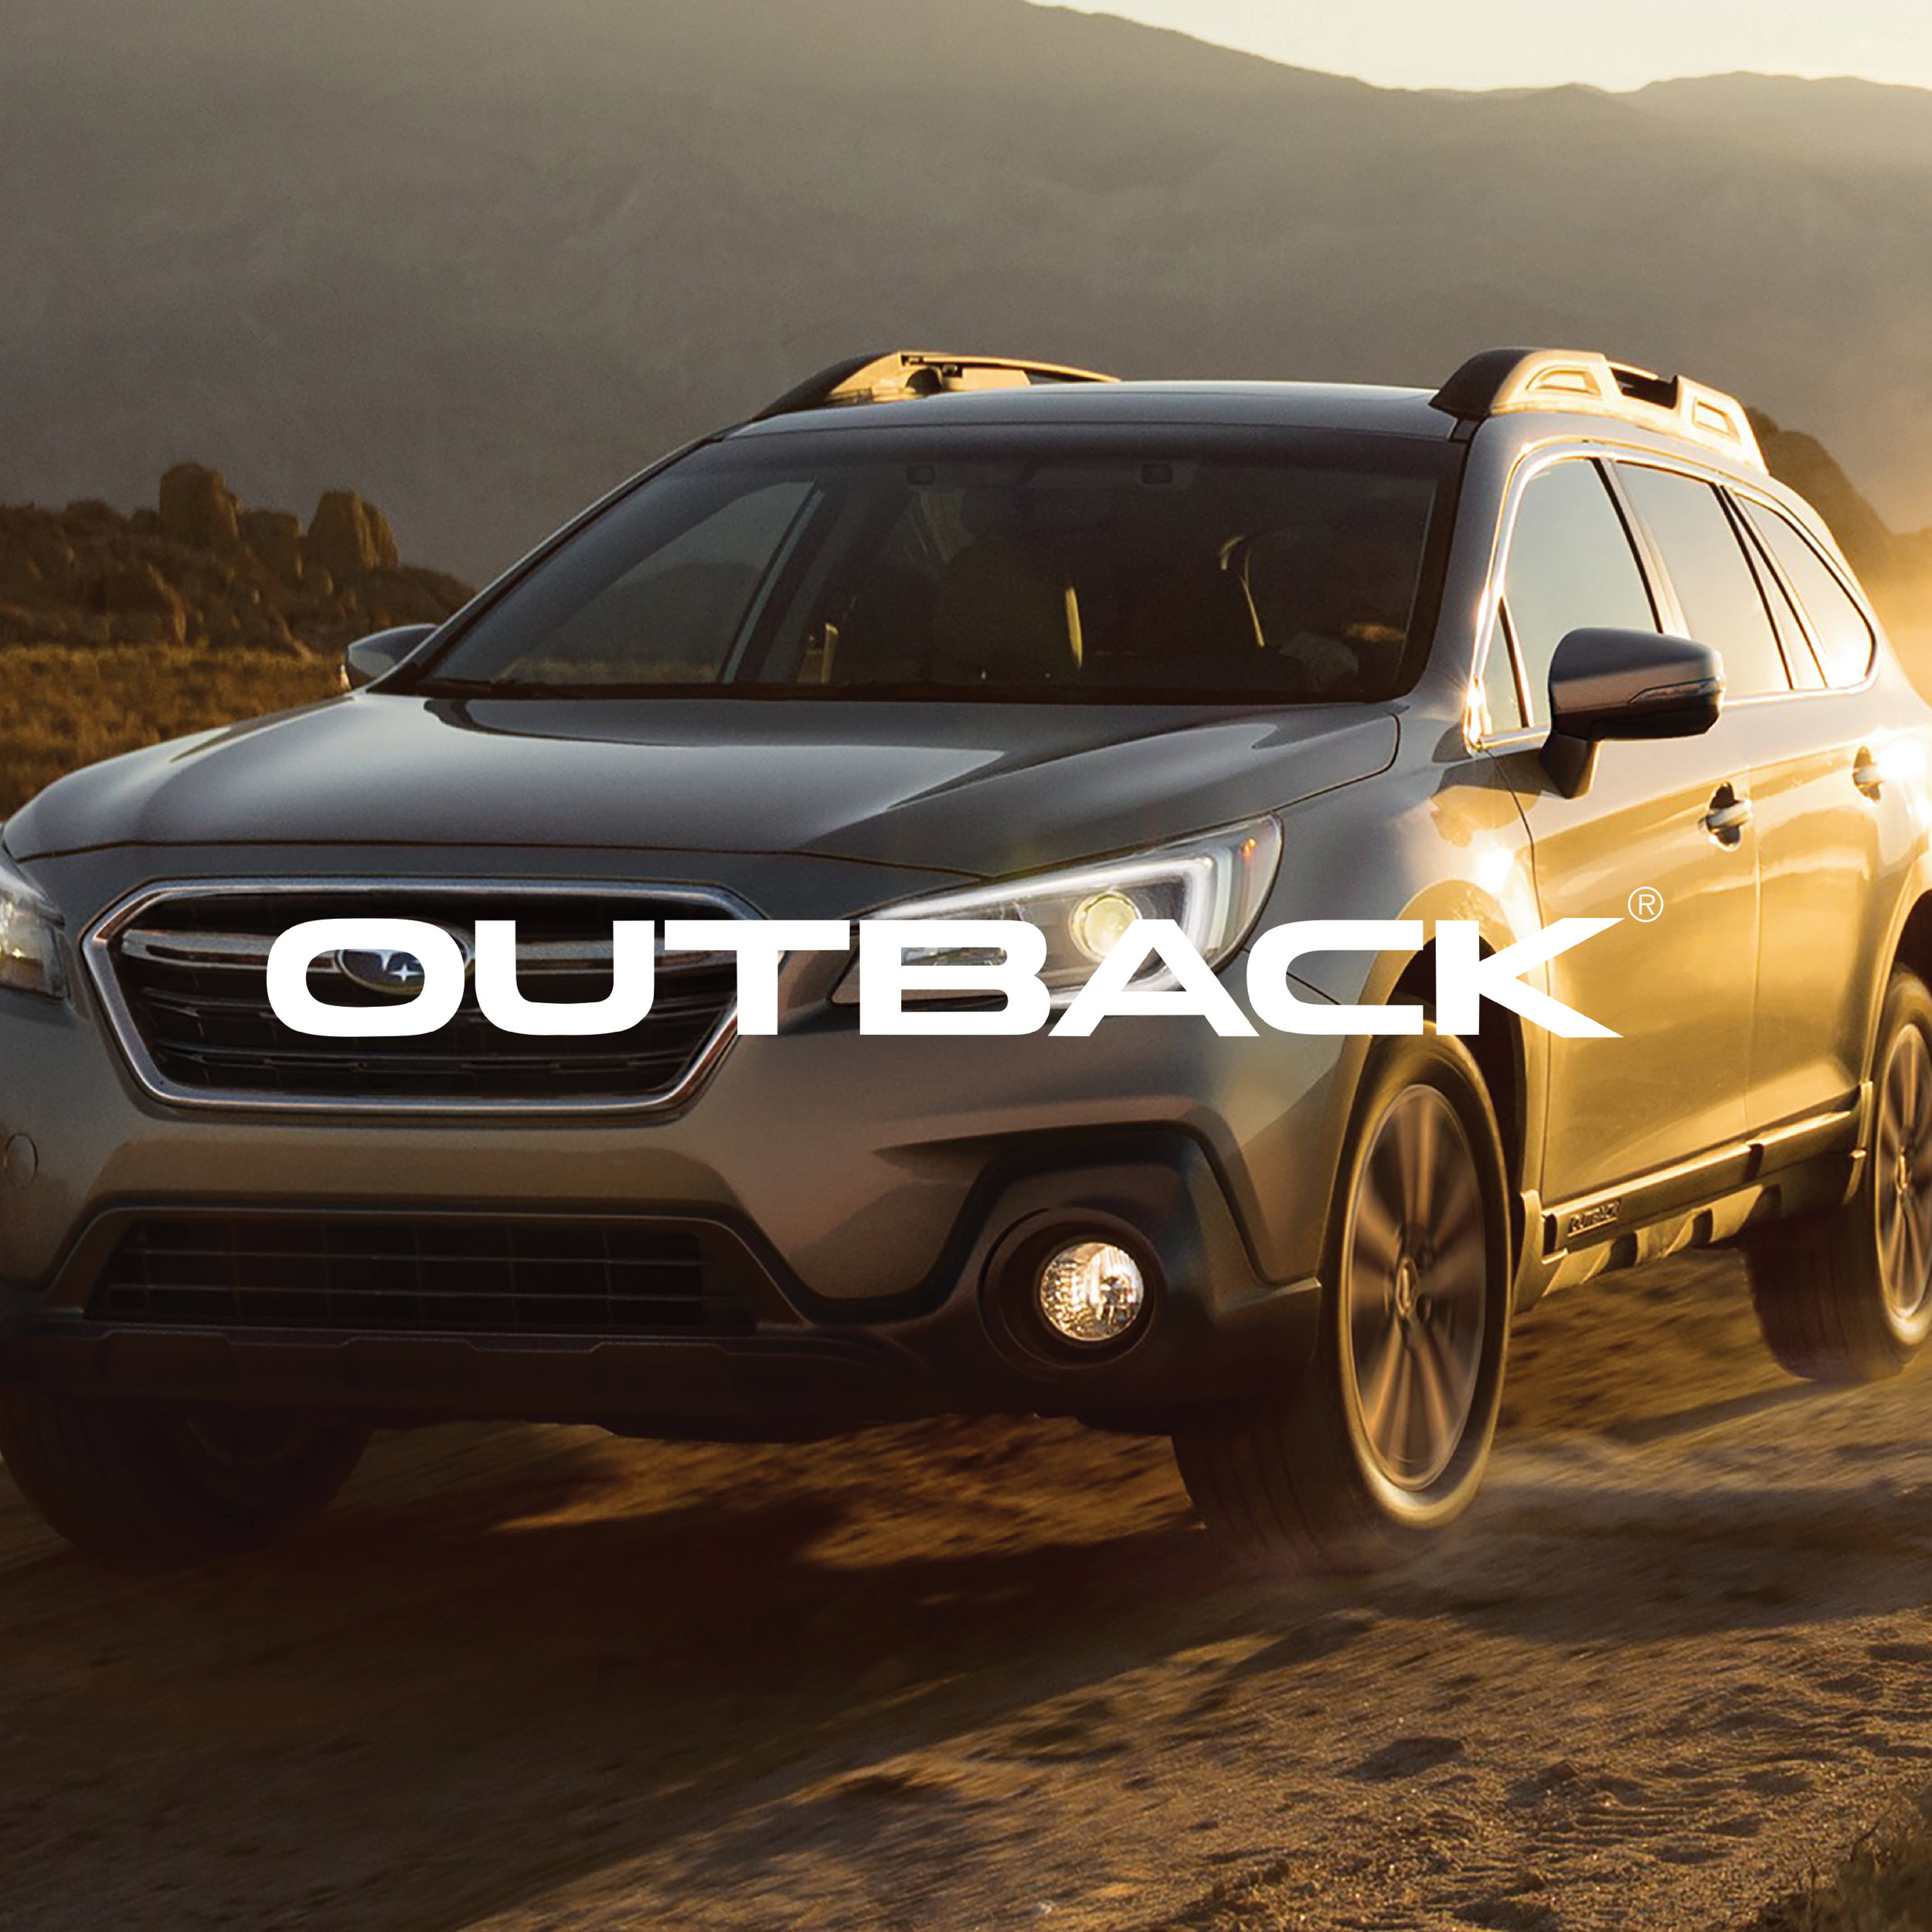 Subaru Outback, Automotive Brand Name Created by Lexicon Branding